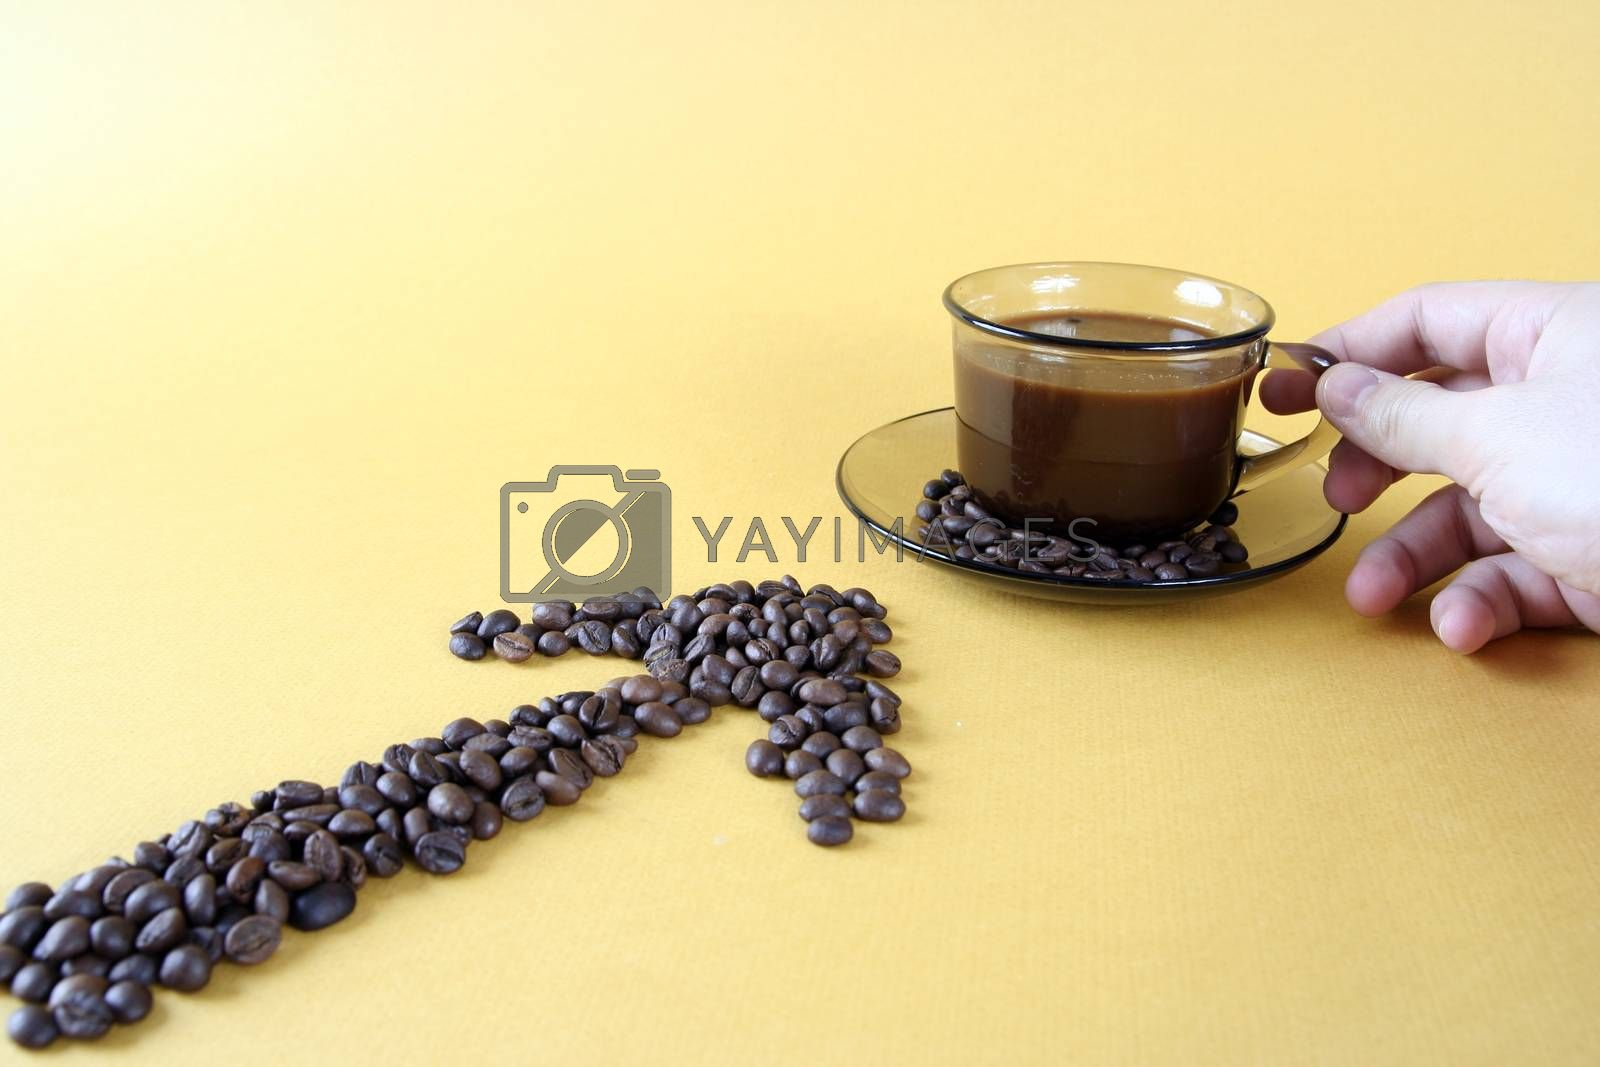 Cup with coffee, costing on coffee grain.